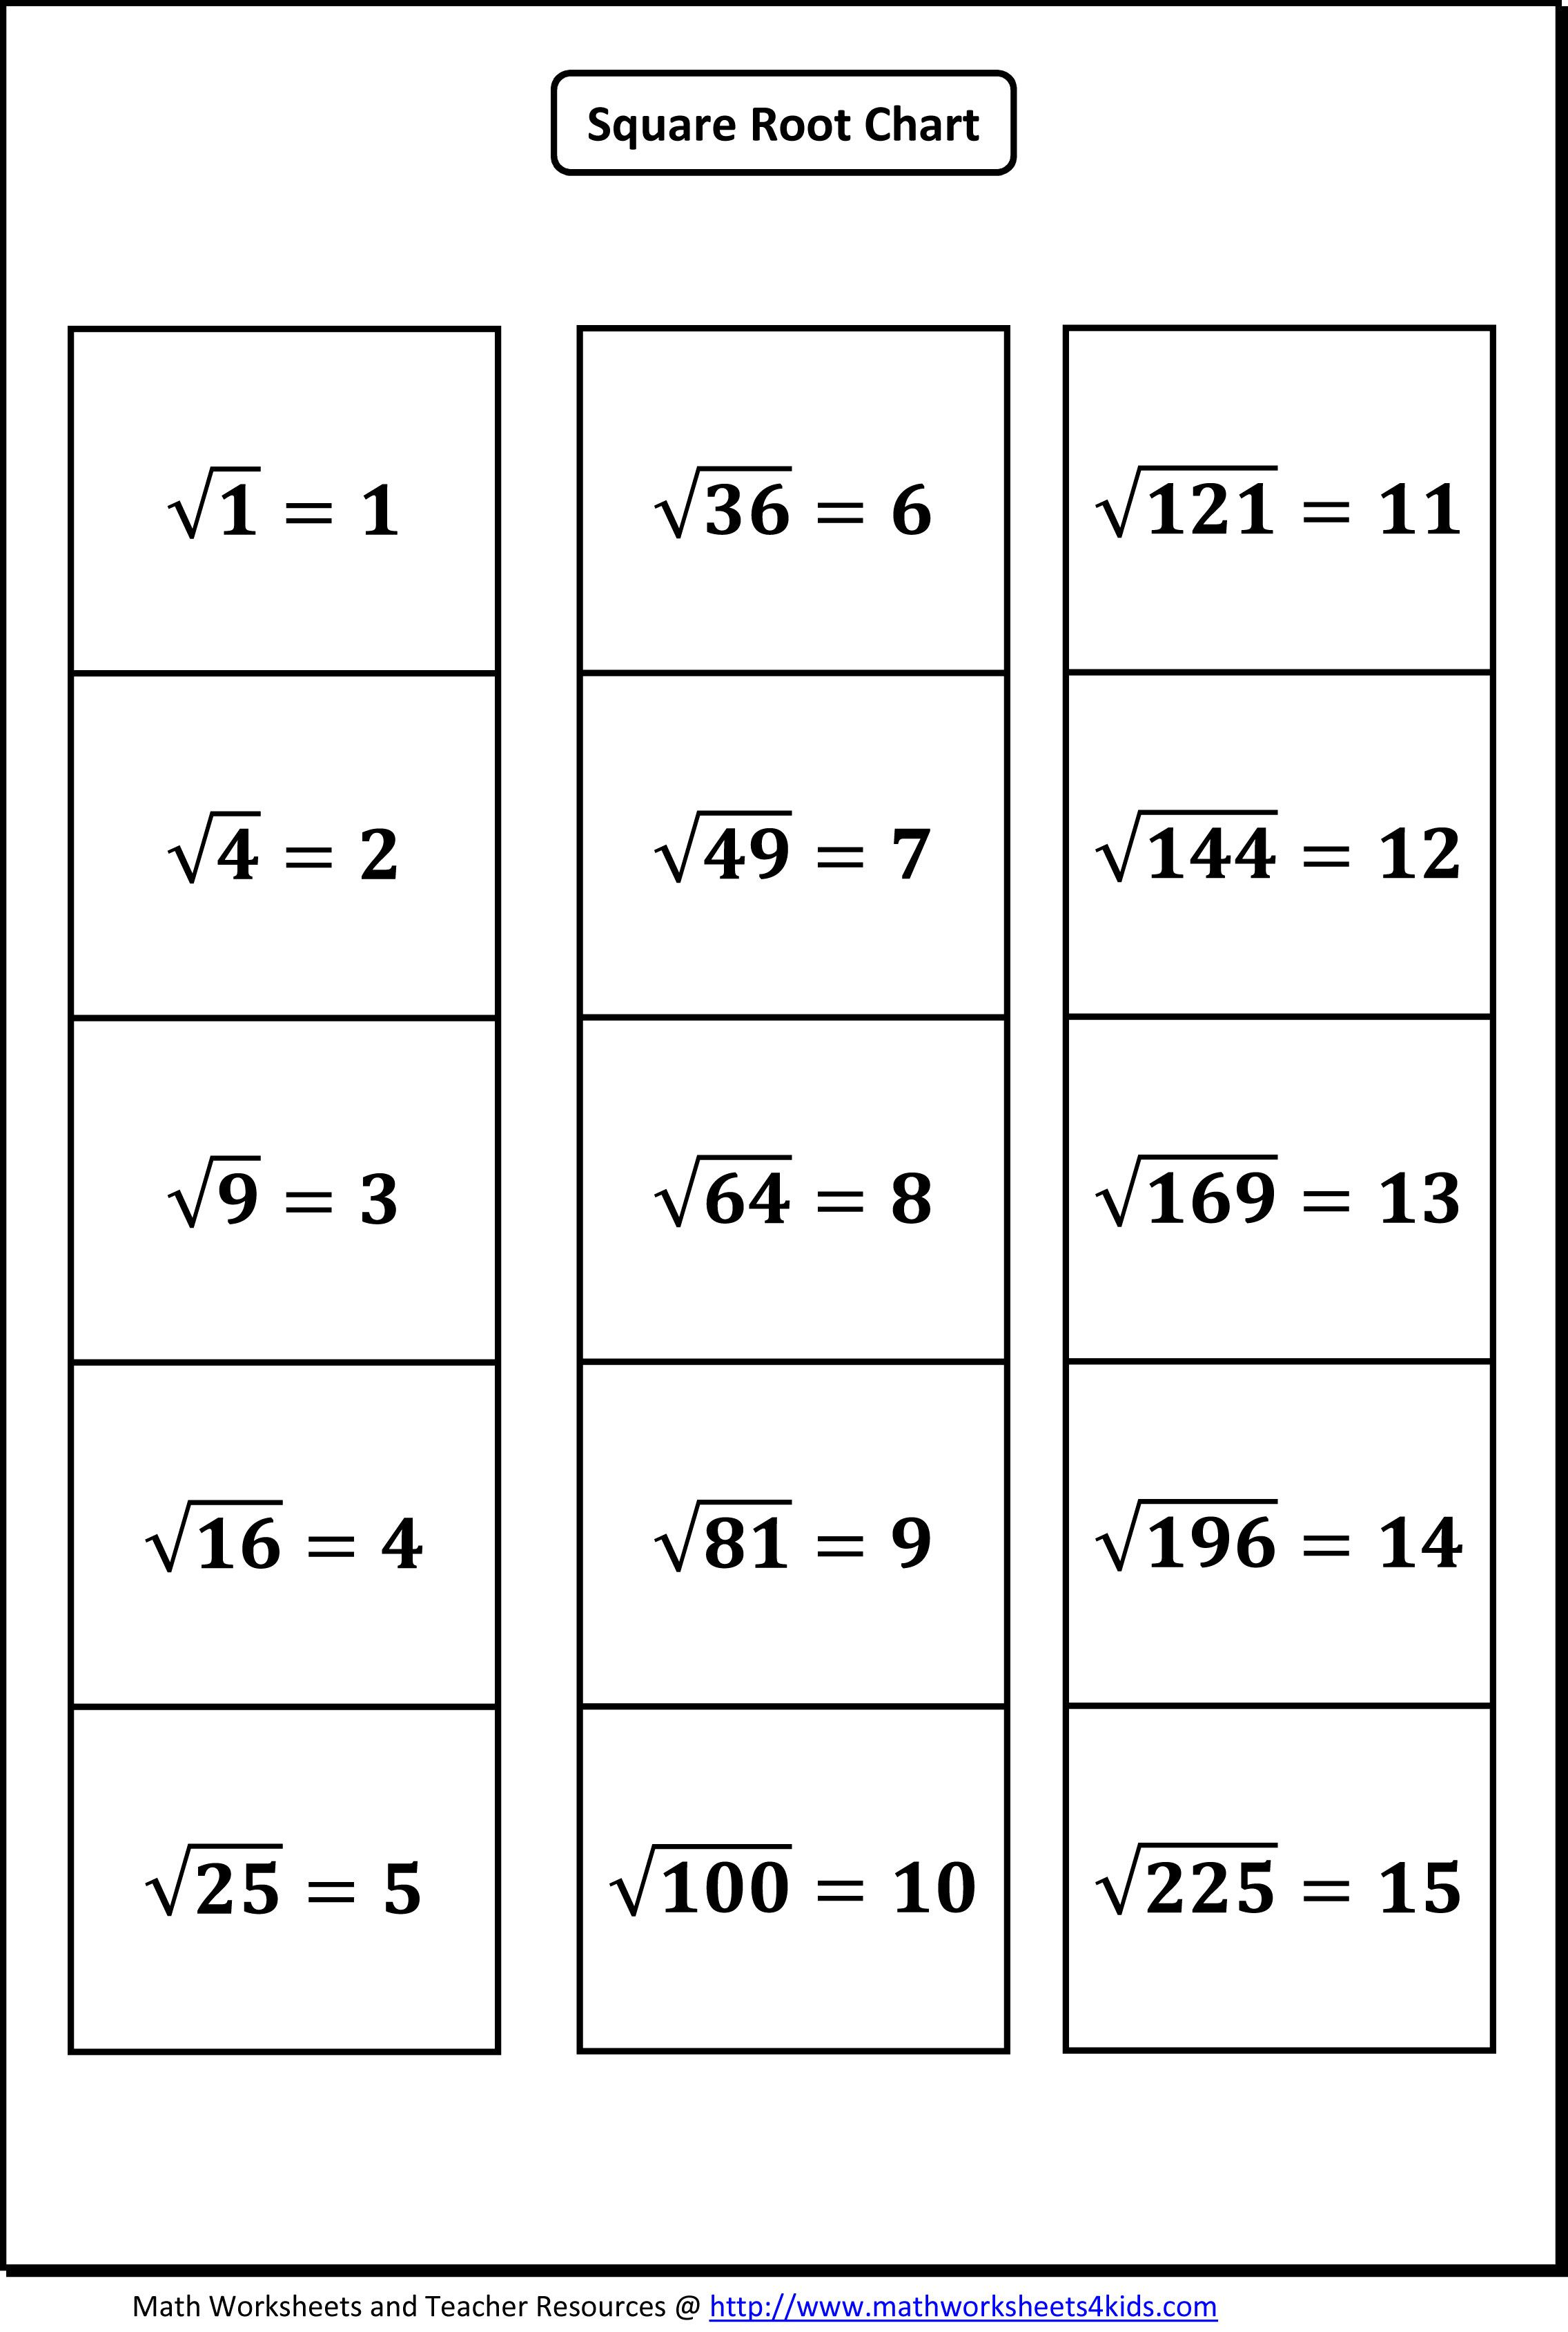 Simplifying Radicals Imaginary Numbers Worksheet Answers